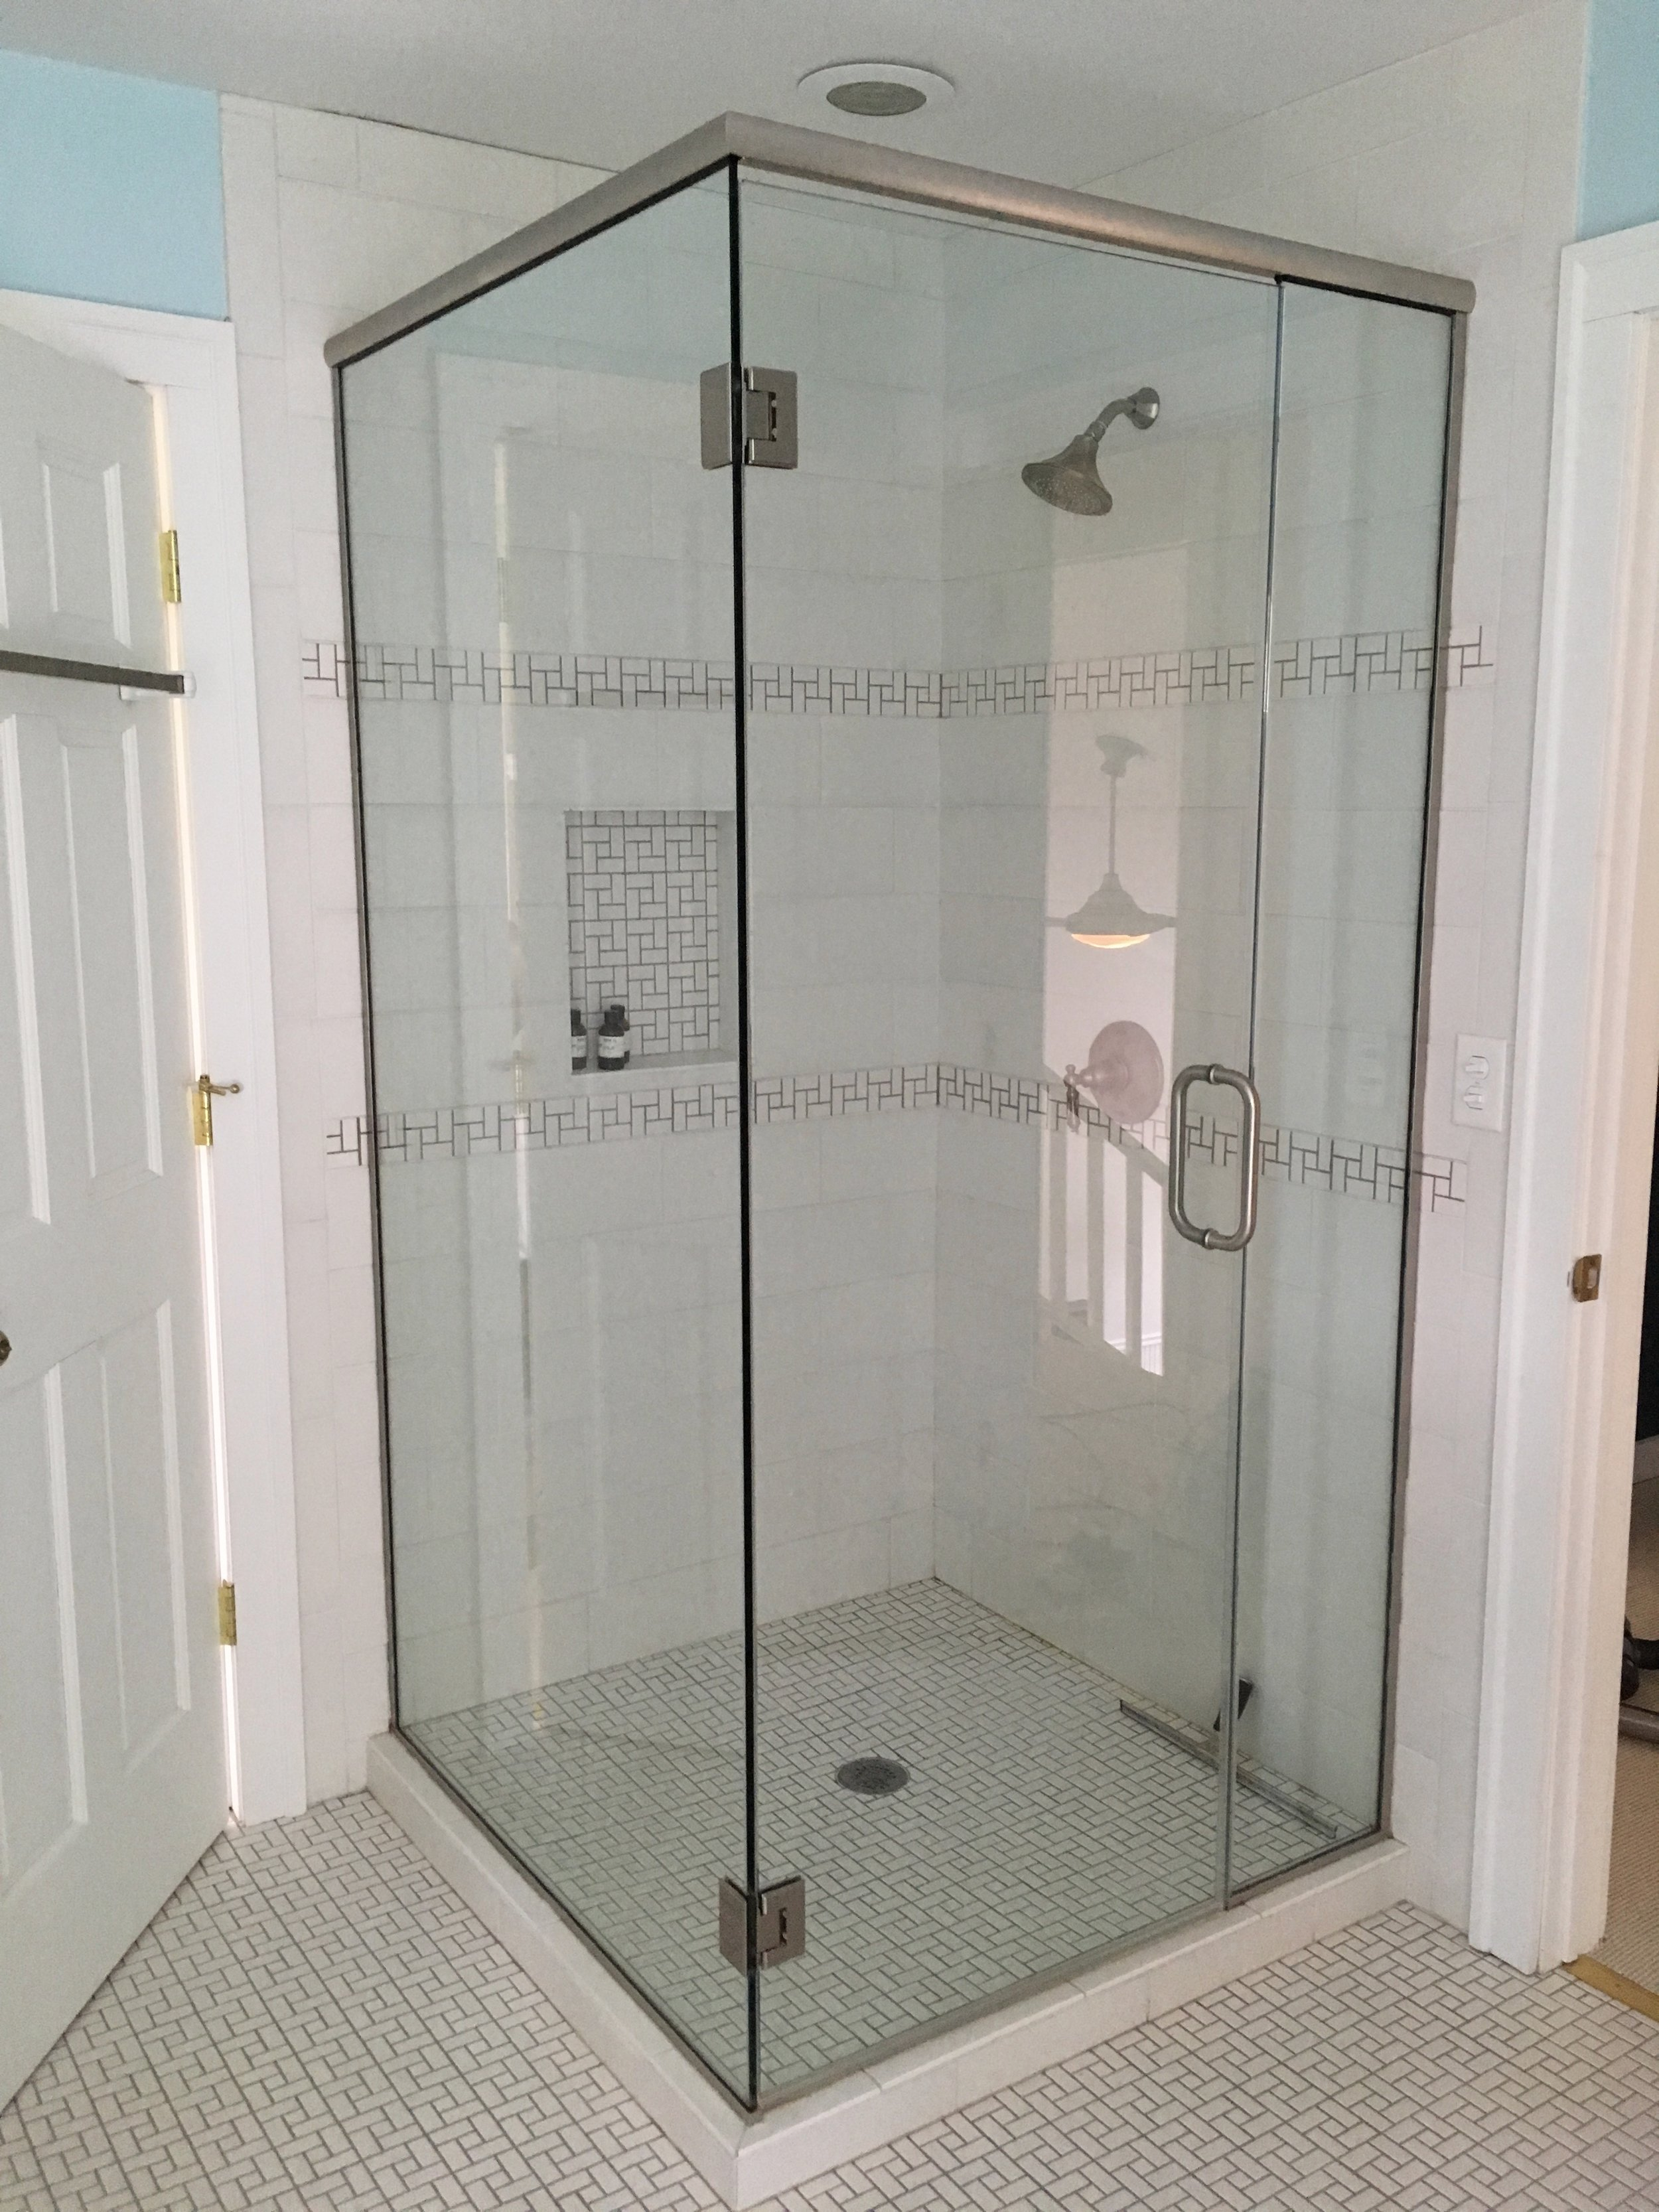 upstairs bath with separate shower